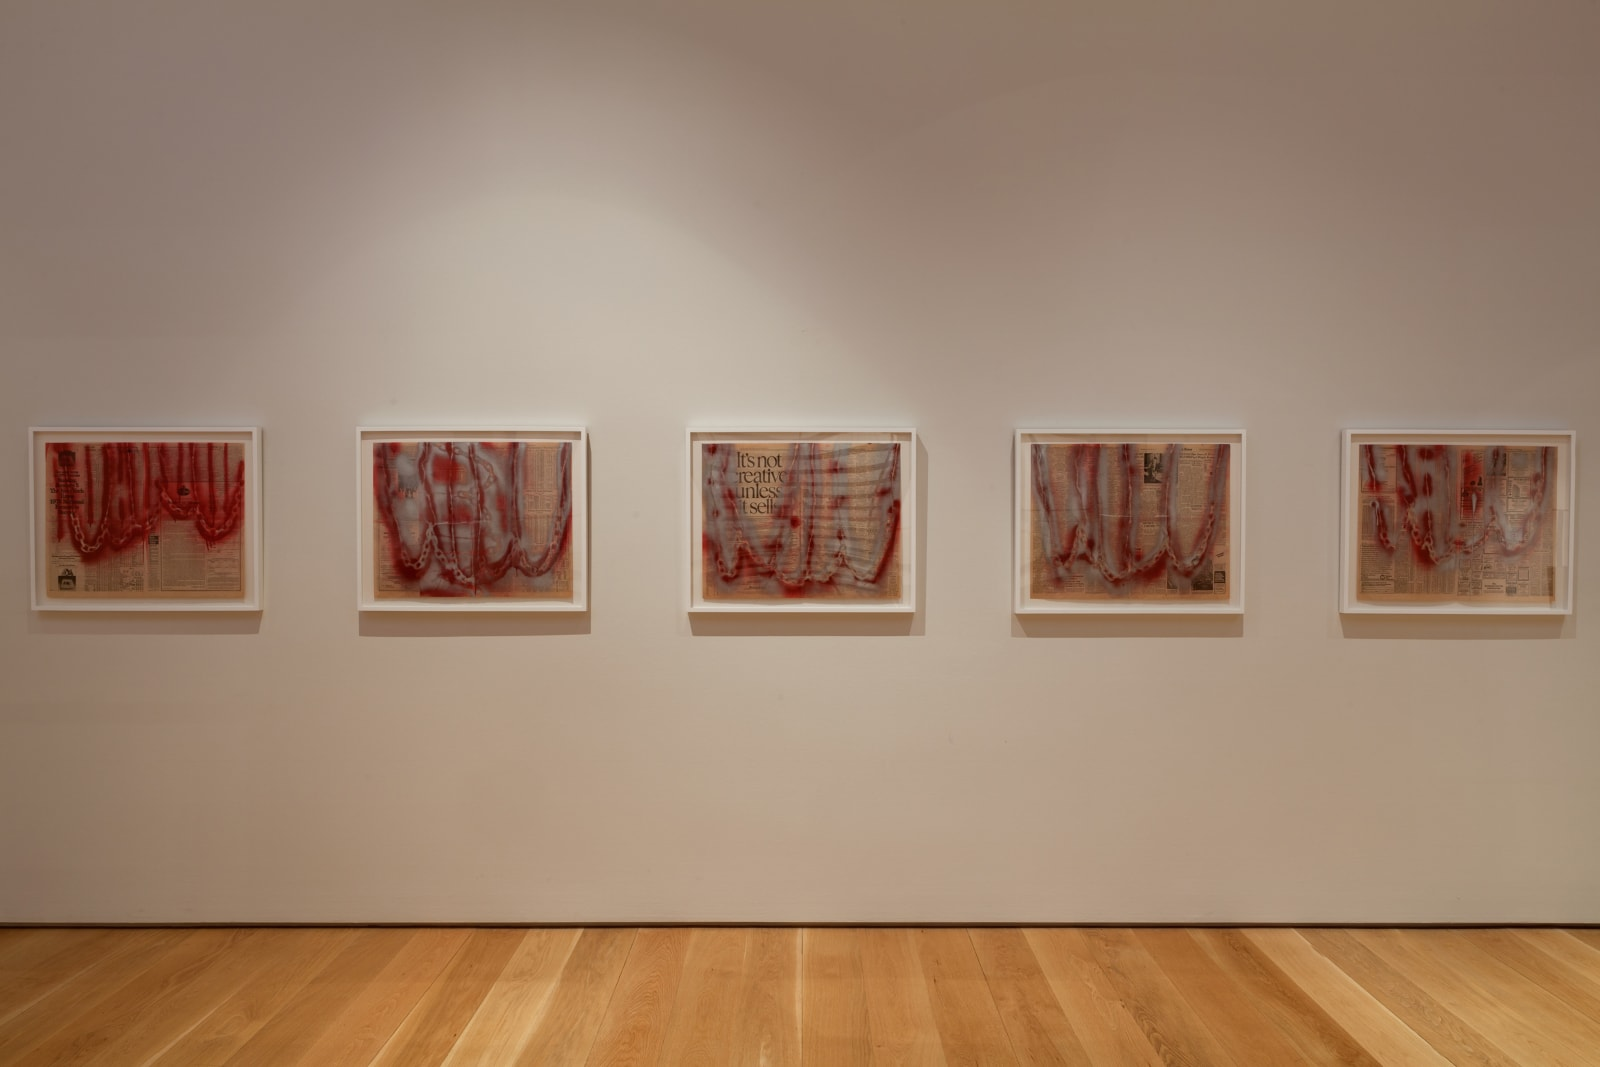 <p>Installation view: 'Melvin Edwards: Five Decades'<span>, Nasher Sculpture Center, Dallas, Texas (2015)</span></p>